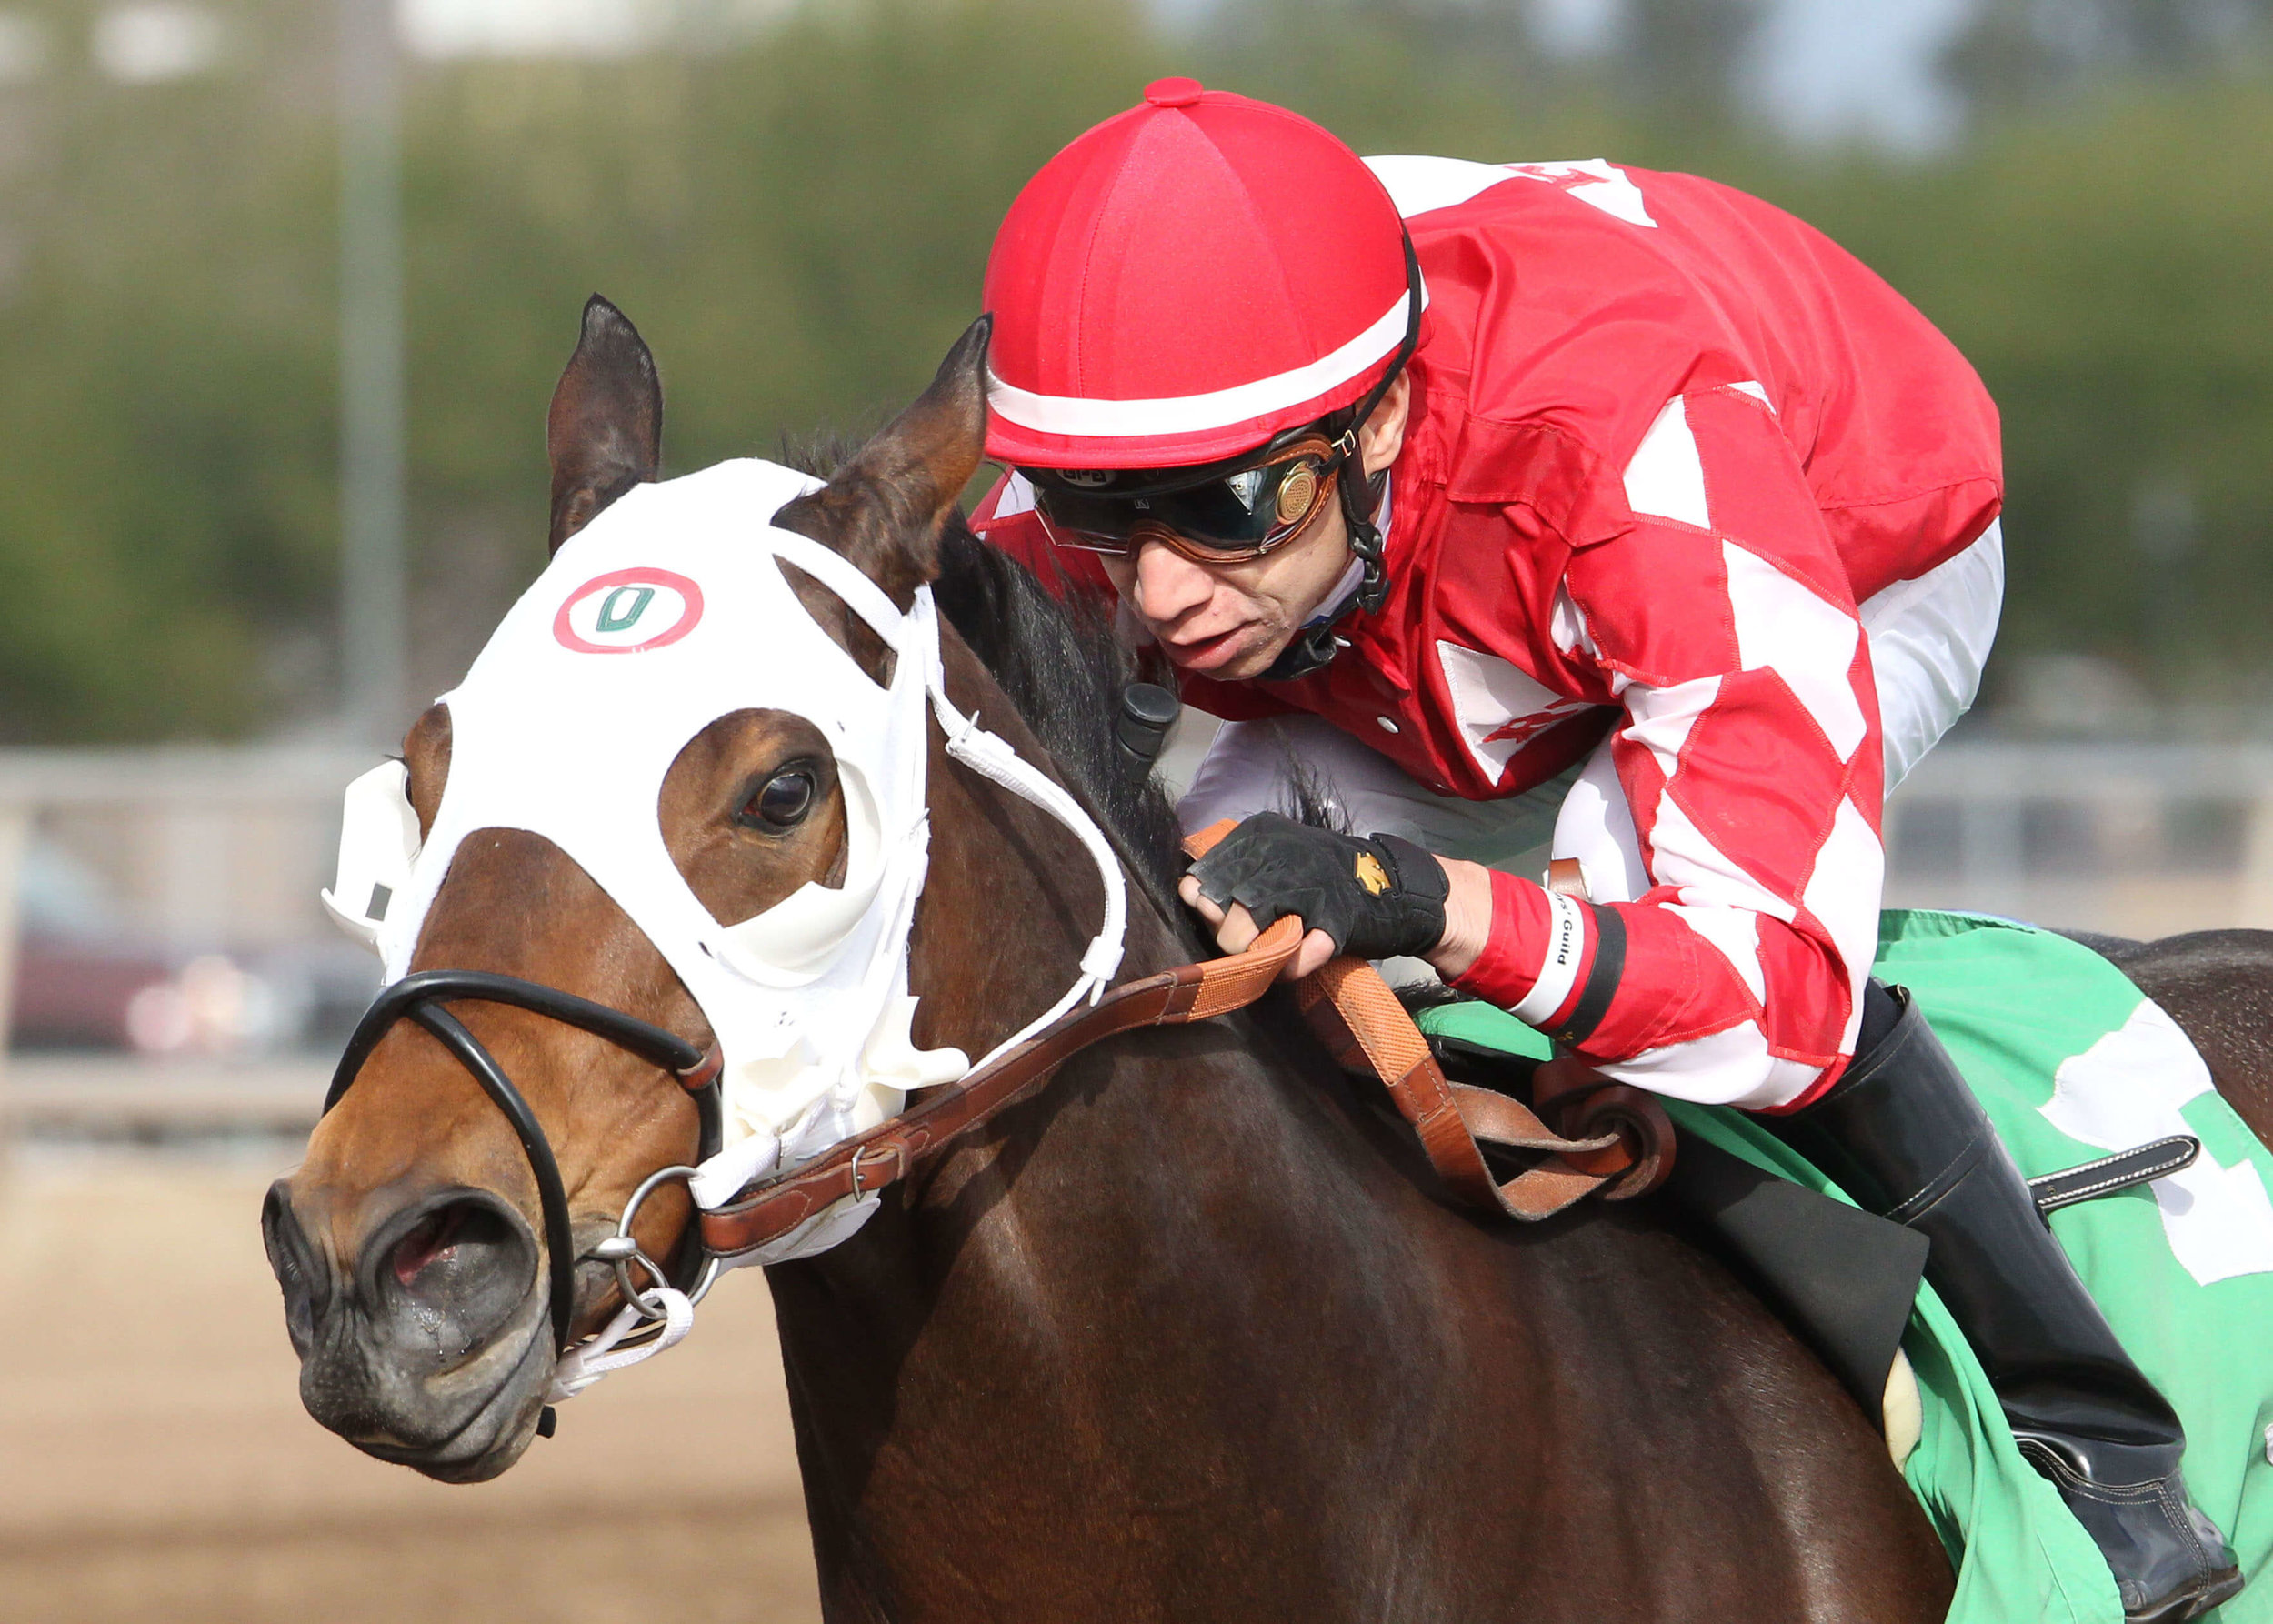 LA Weekend - Caballos Del Sol Stakes - 12-07-13 - R04 - TUP - Inside Finish (1) (1).jpg